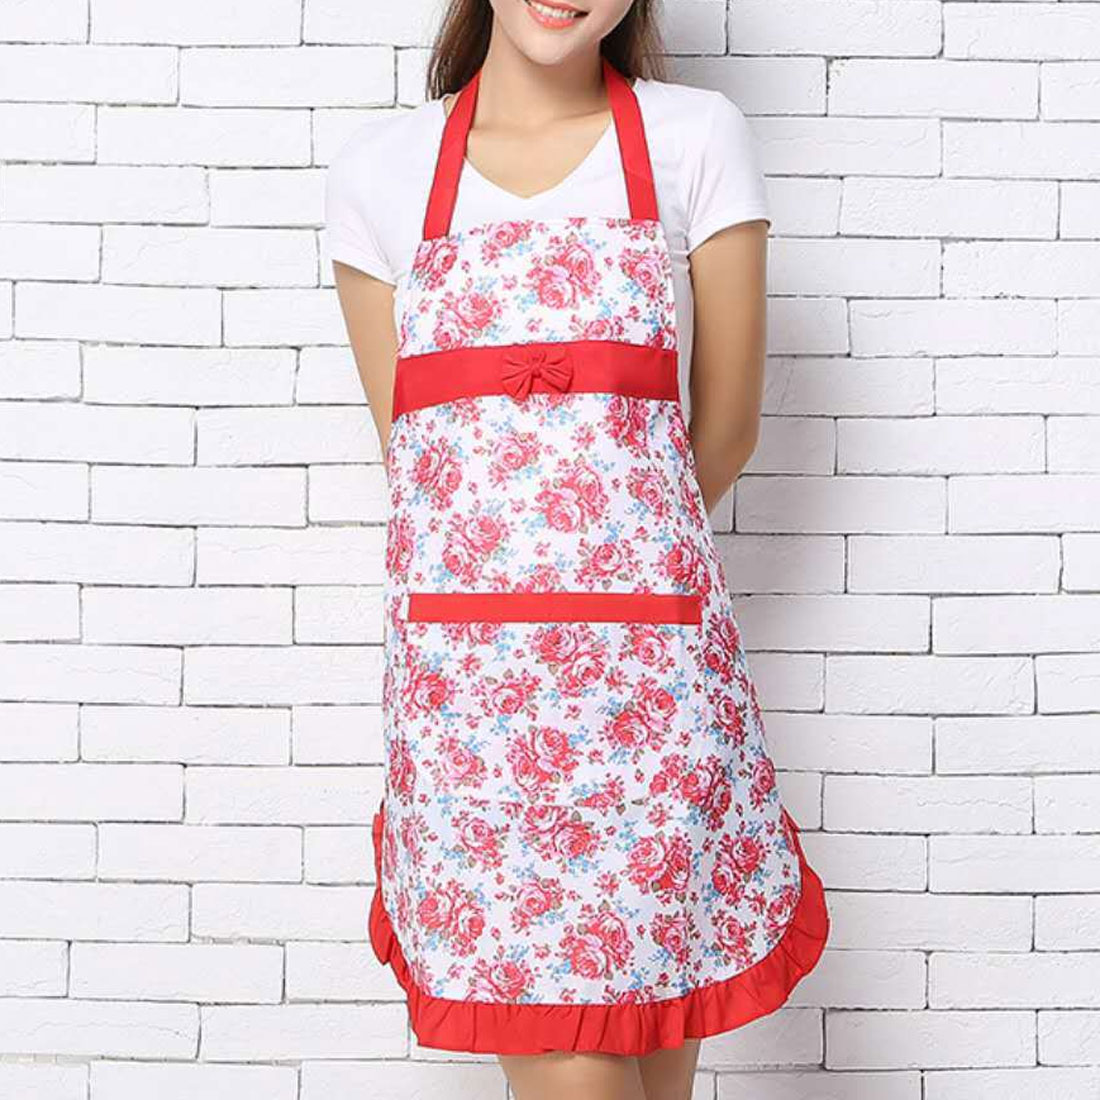 7afe6c3b59 Chinese Kitchen Pinafore Floral Cotton Linen Apron Woman Bibs For Home  Cooking Baking Coffee Shop Cleaning Aprons With Pocket